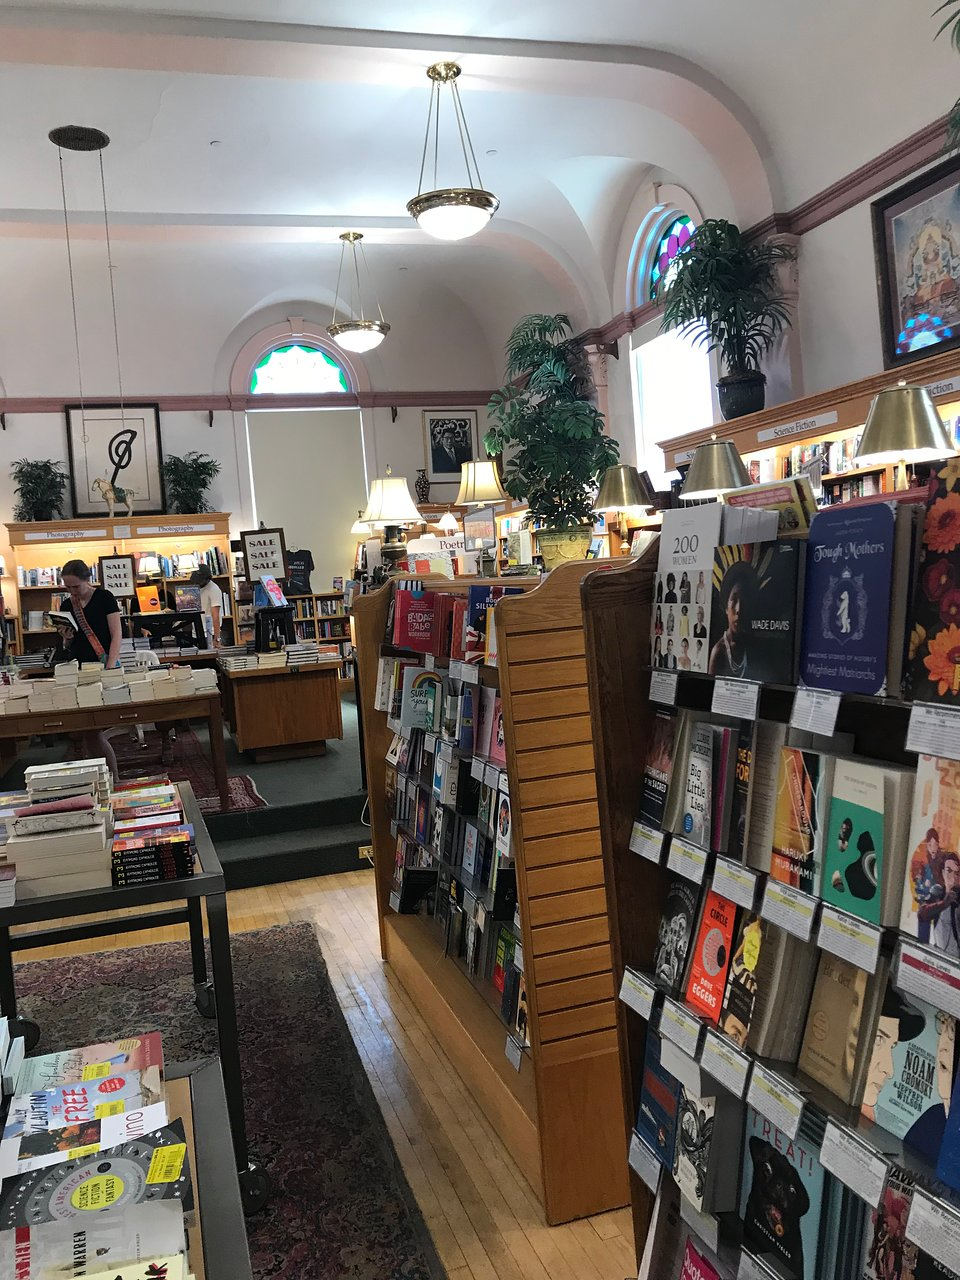 Boulder Book Store 2020 All You Need To Know Before You Go With Photos Tripadvisor